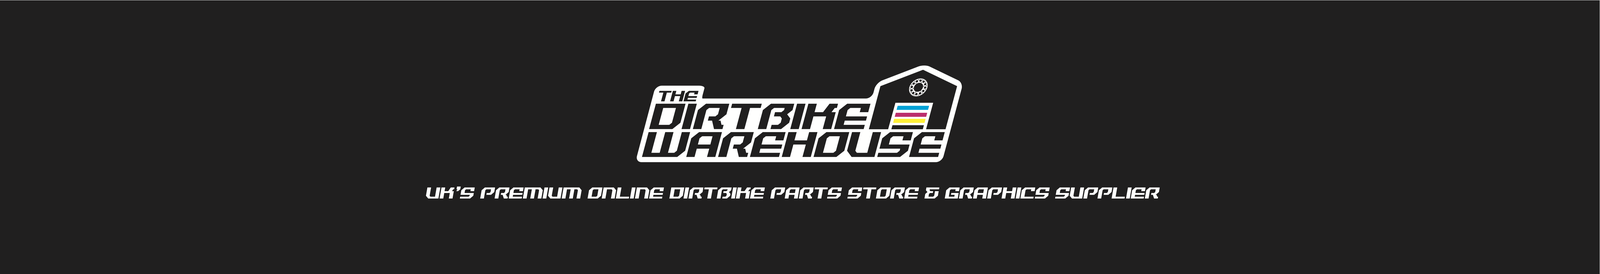 thedecalwarehouse